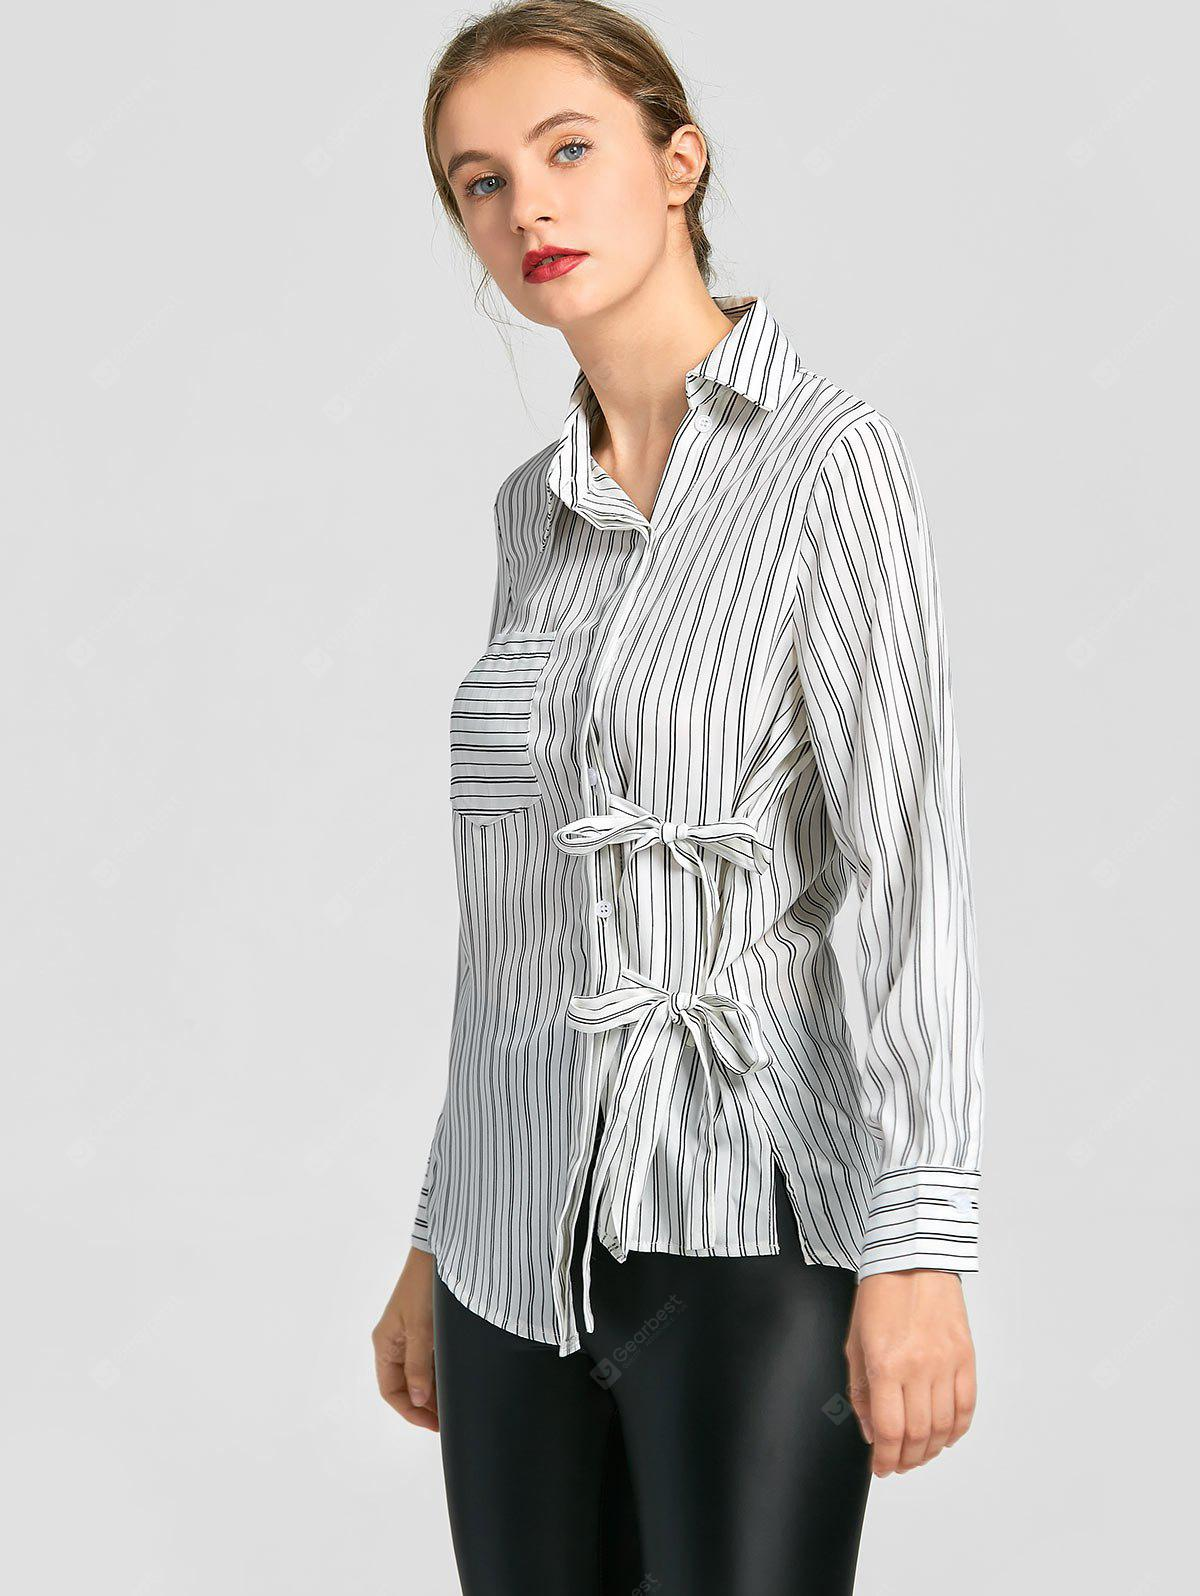 Self Tie Bowknot Button Up Striped Shirt